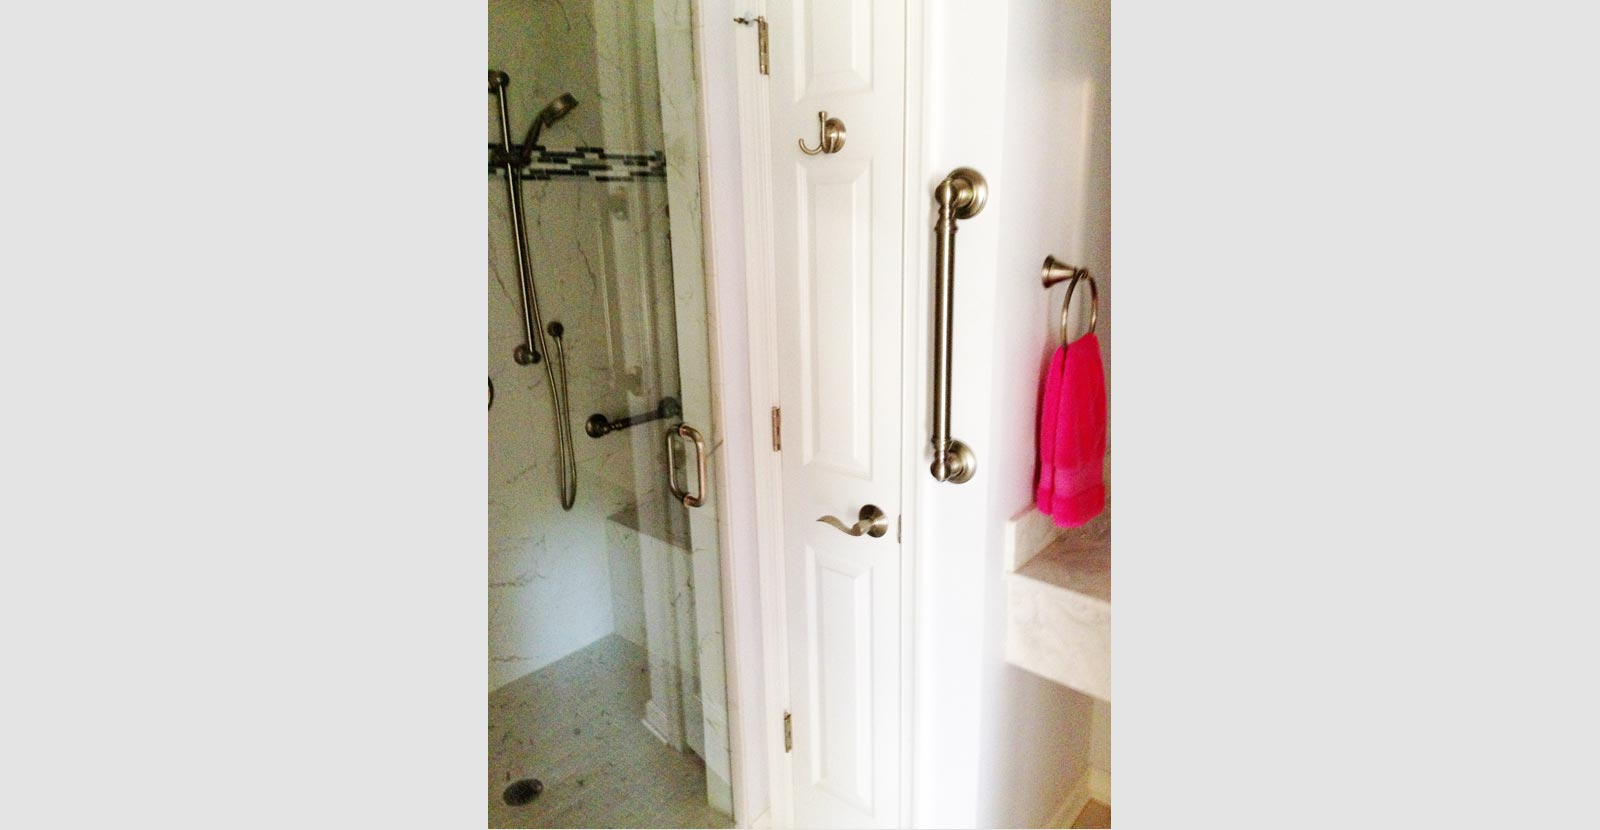 Bathroom Remodeling Hampton Roads Va bathroom remodeling services in hampton | hatchett contractors